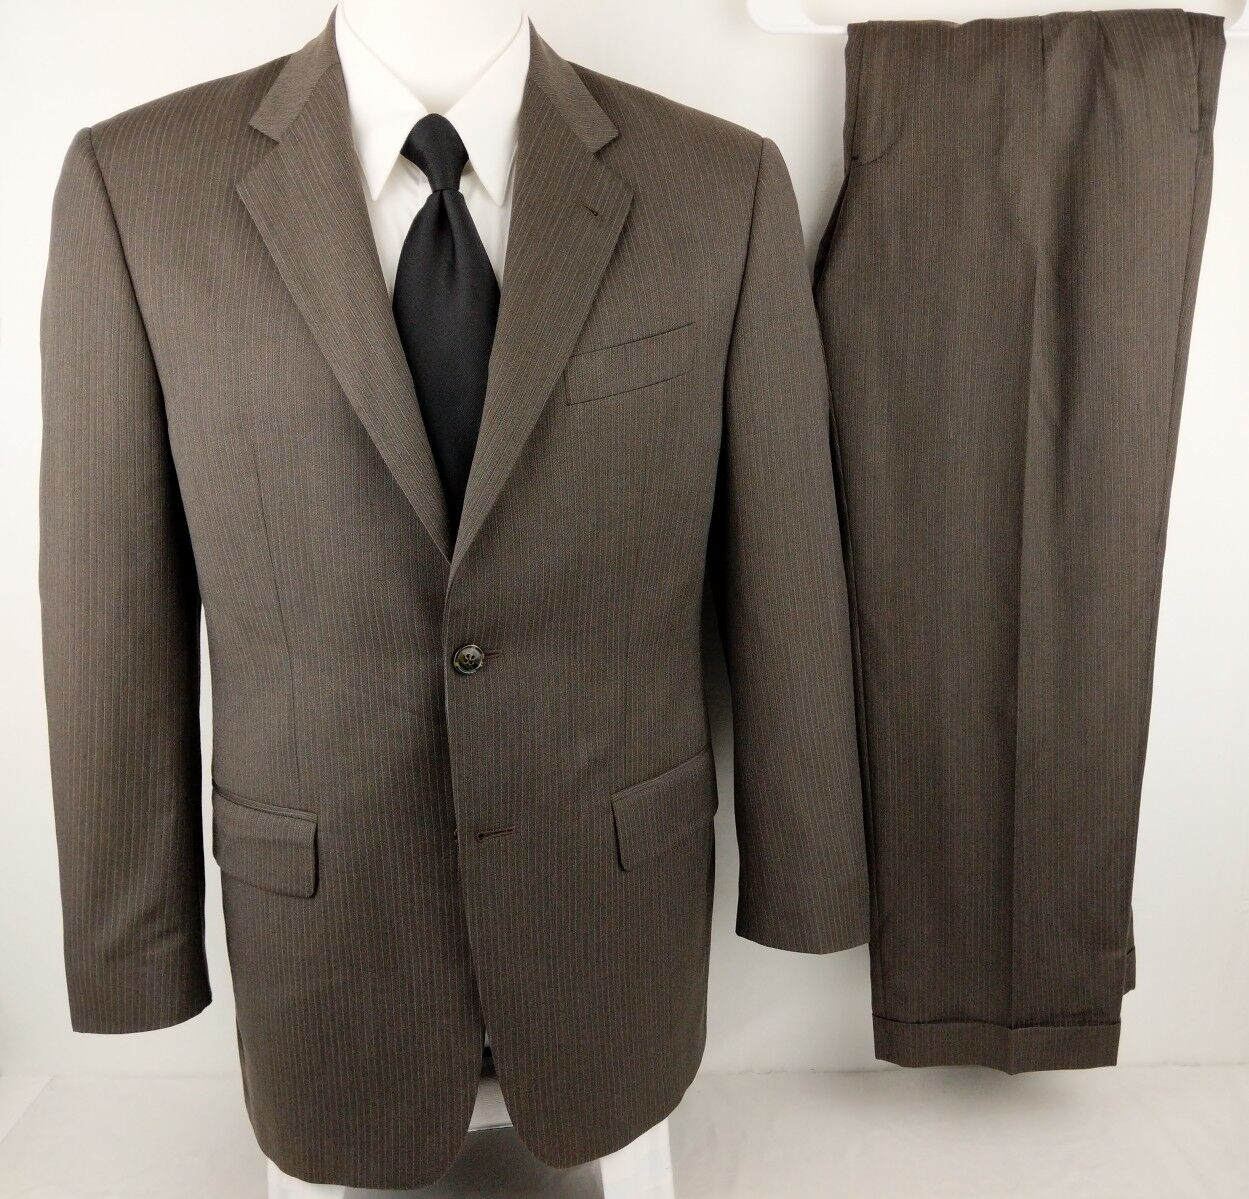 JOSEPH ABBOUD 40R Light Brown Summer 2 Btn Striped Wool Suit 34